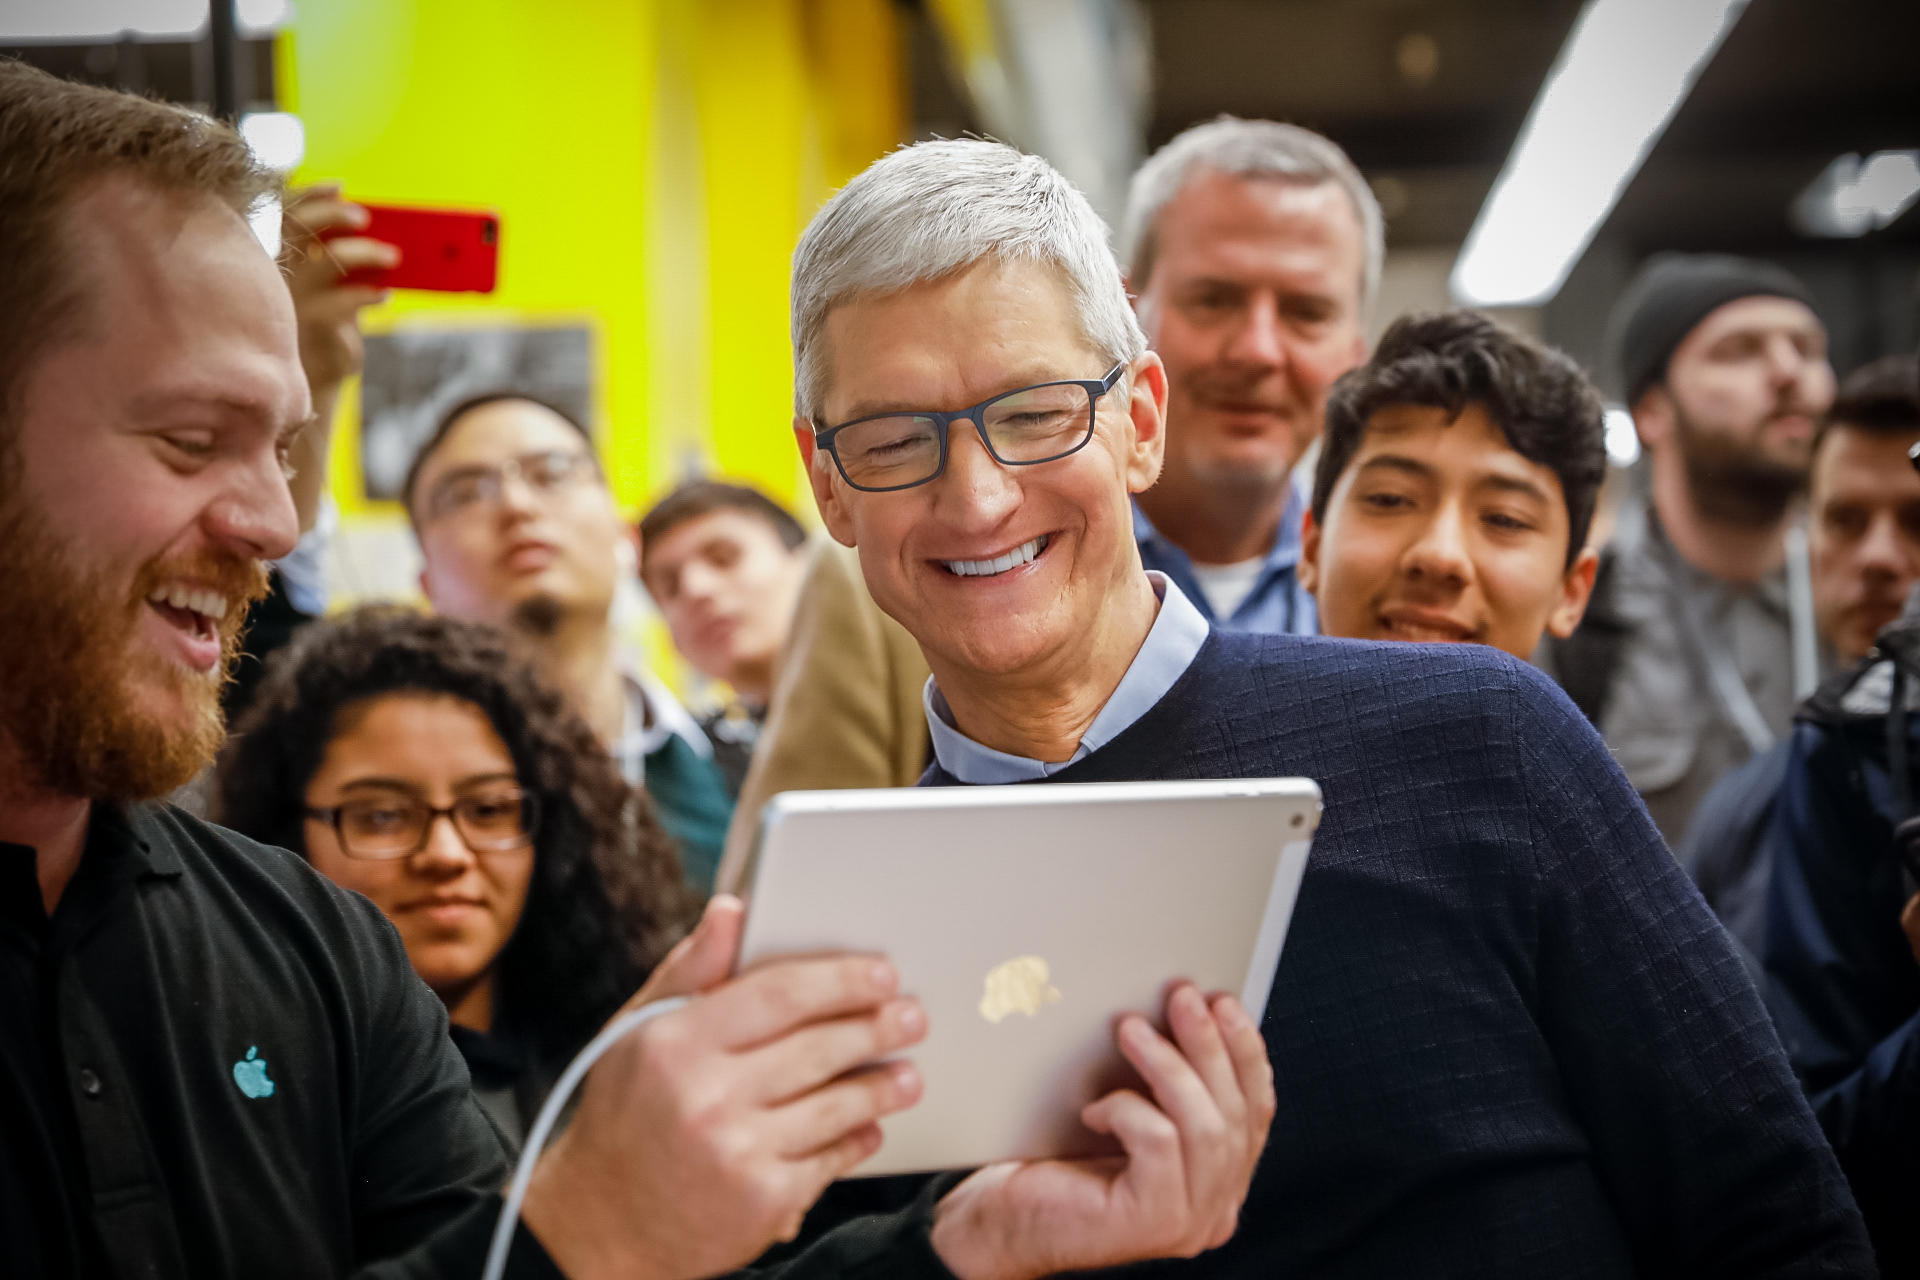 apple-ipad-chicago-tim-cook-9449